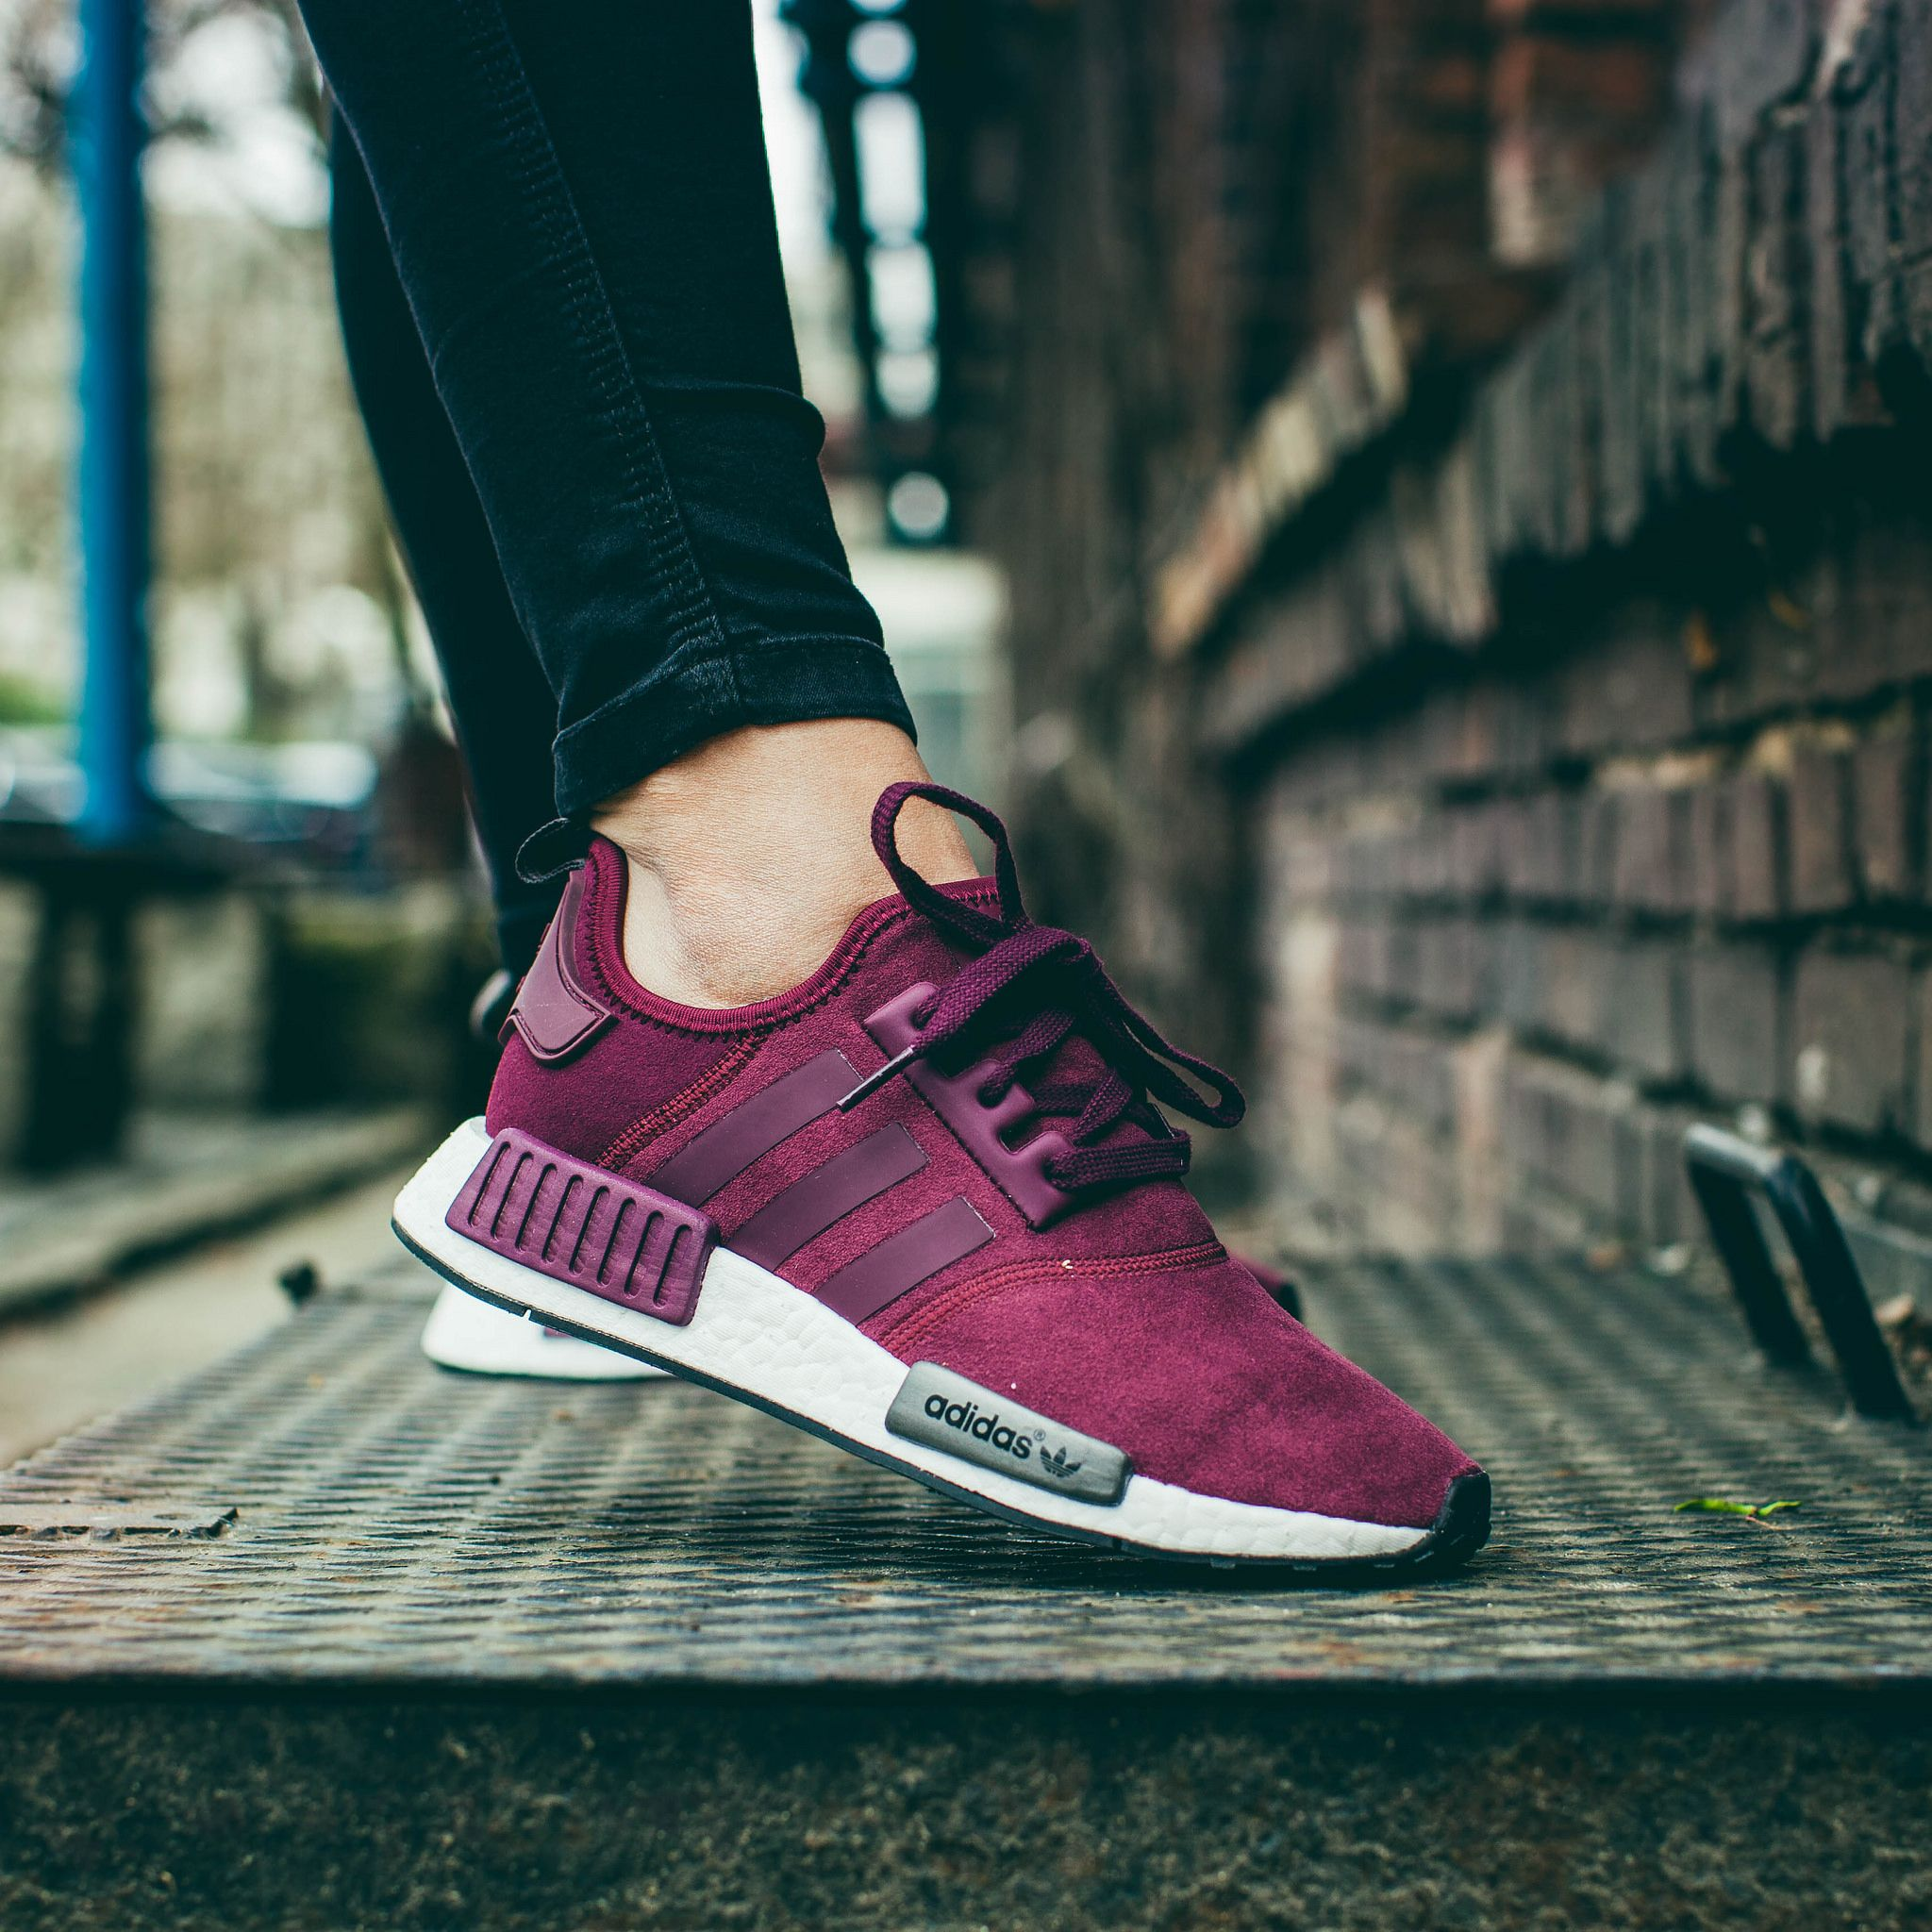 Adidas NMD R1 Purple Maroon Solid Grey   Shoes in 2019